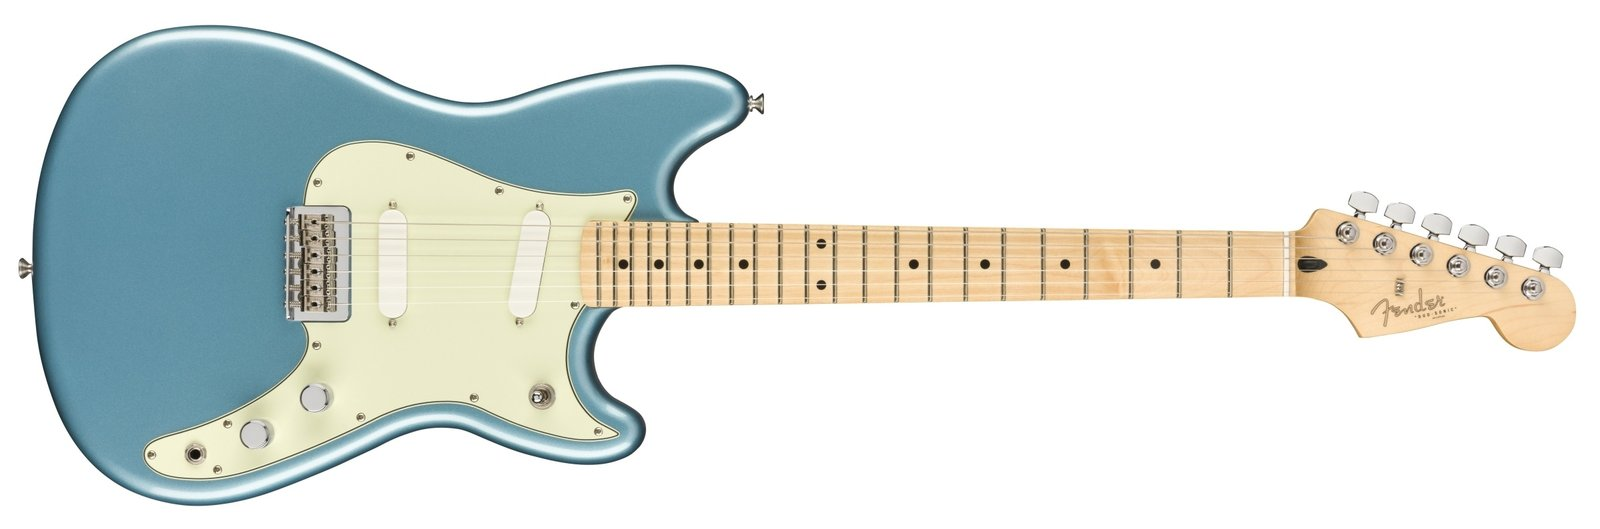 Ses guitares - Page 4 200227093515120136